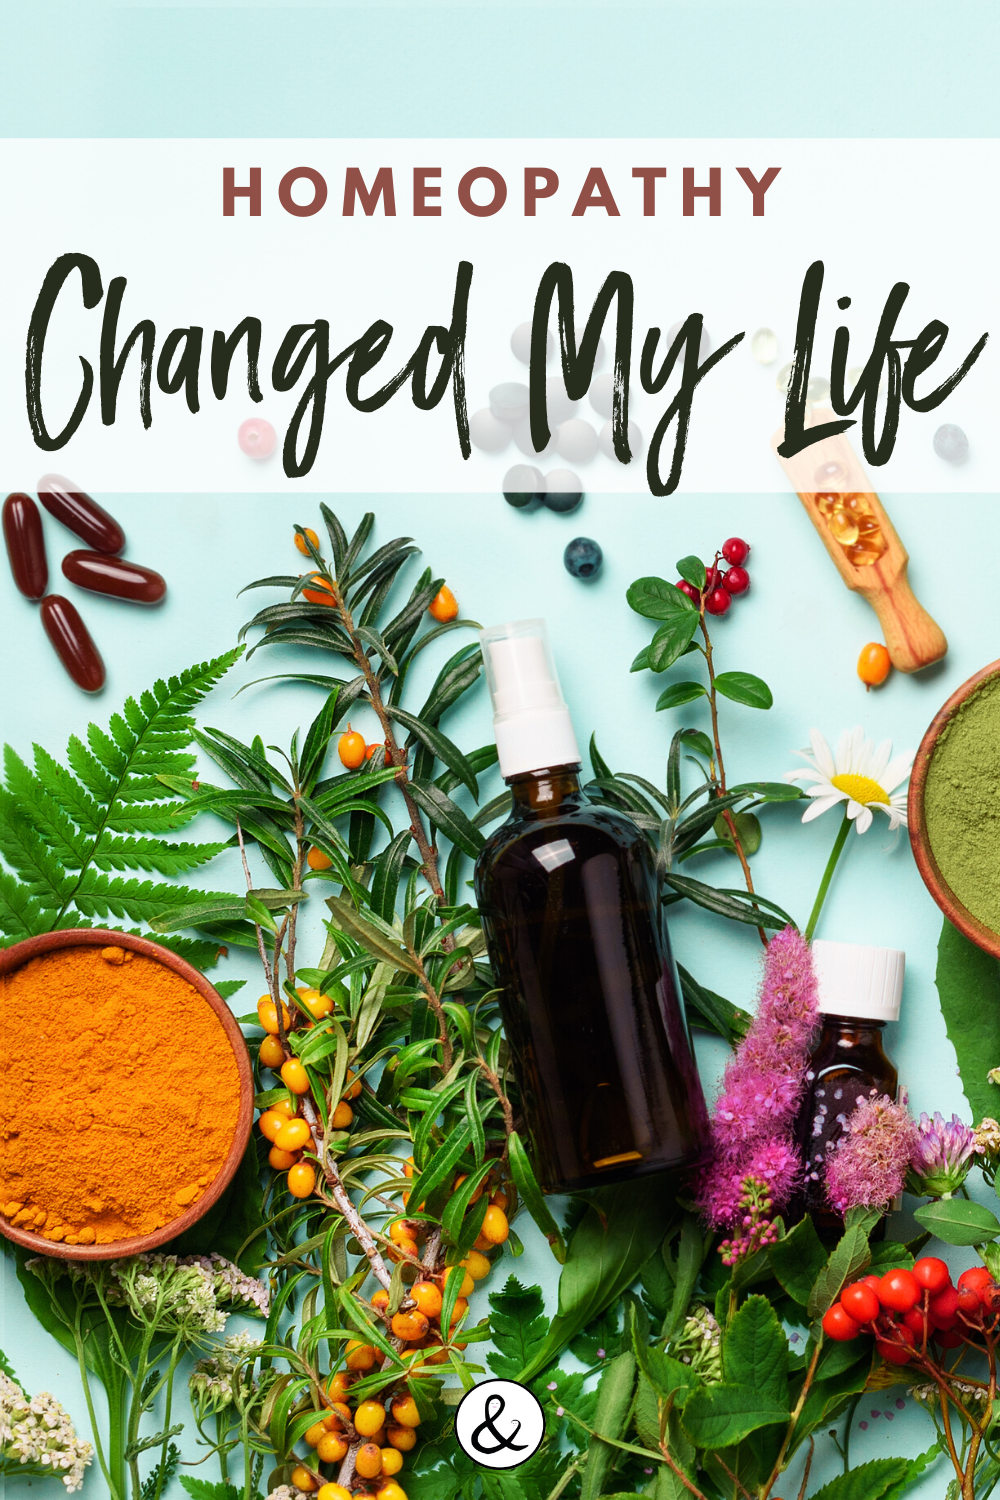 How Homeopathy Changed my Life